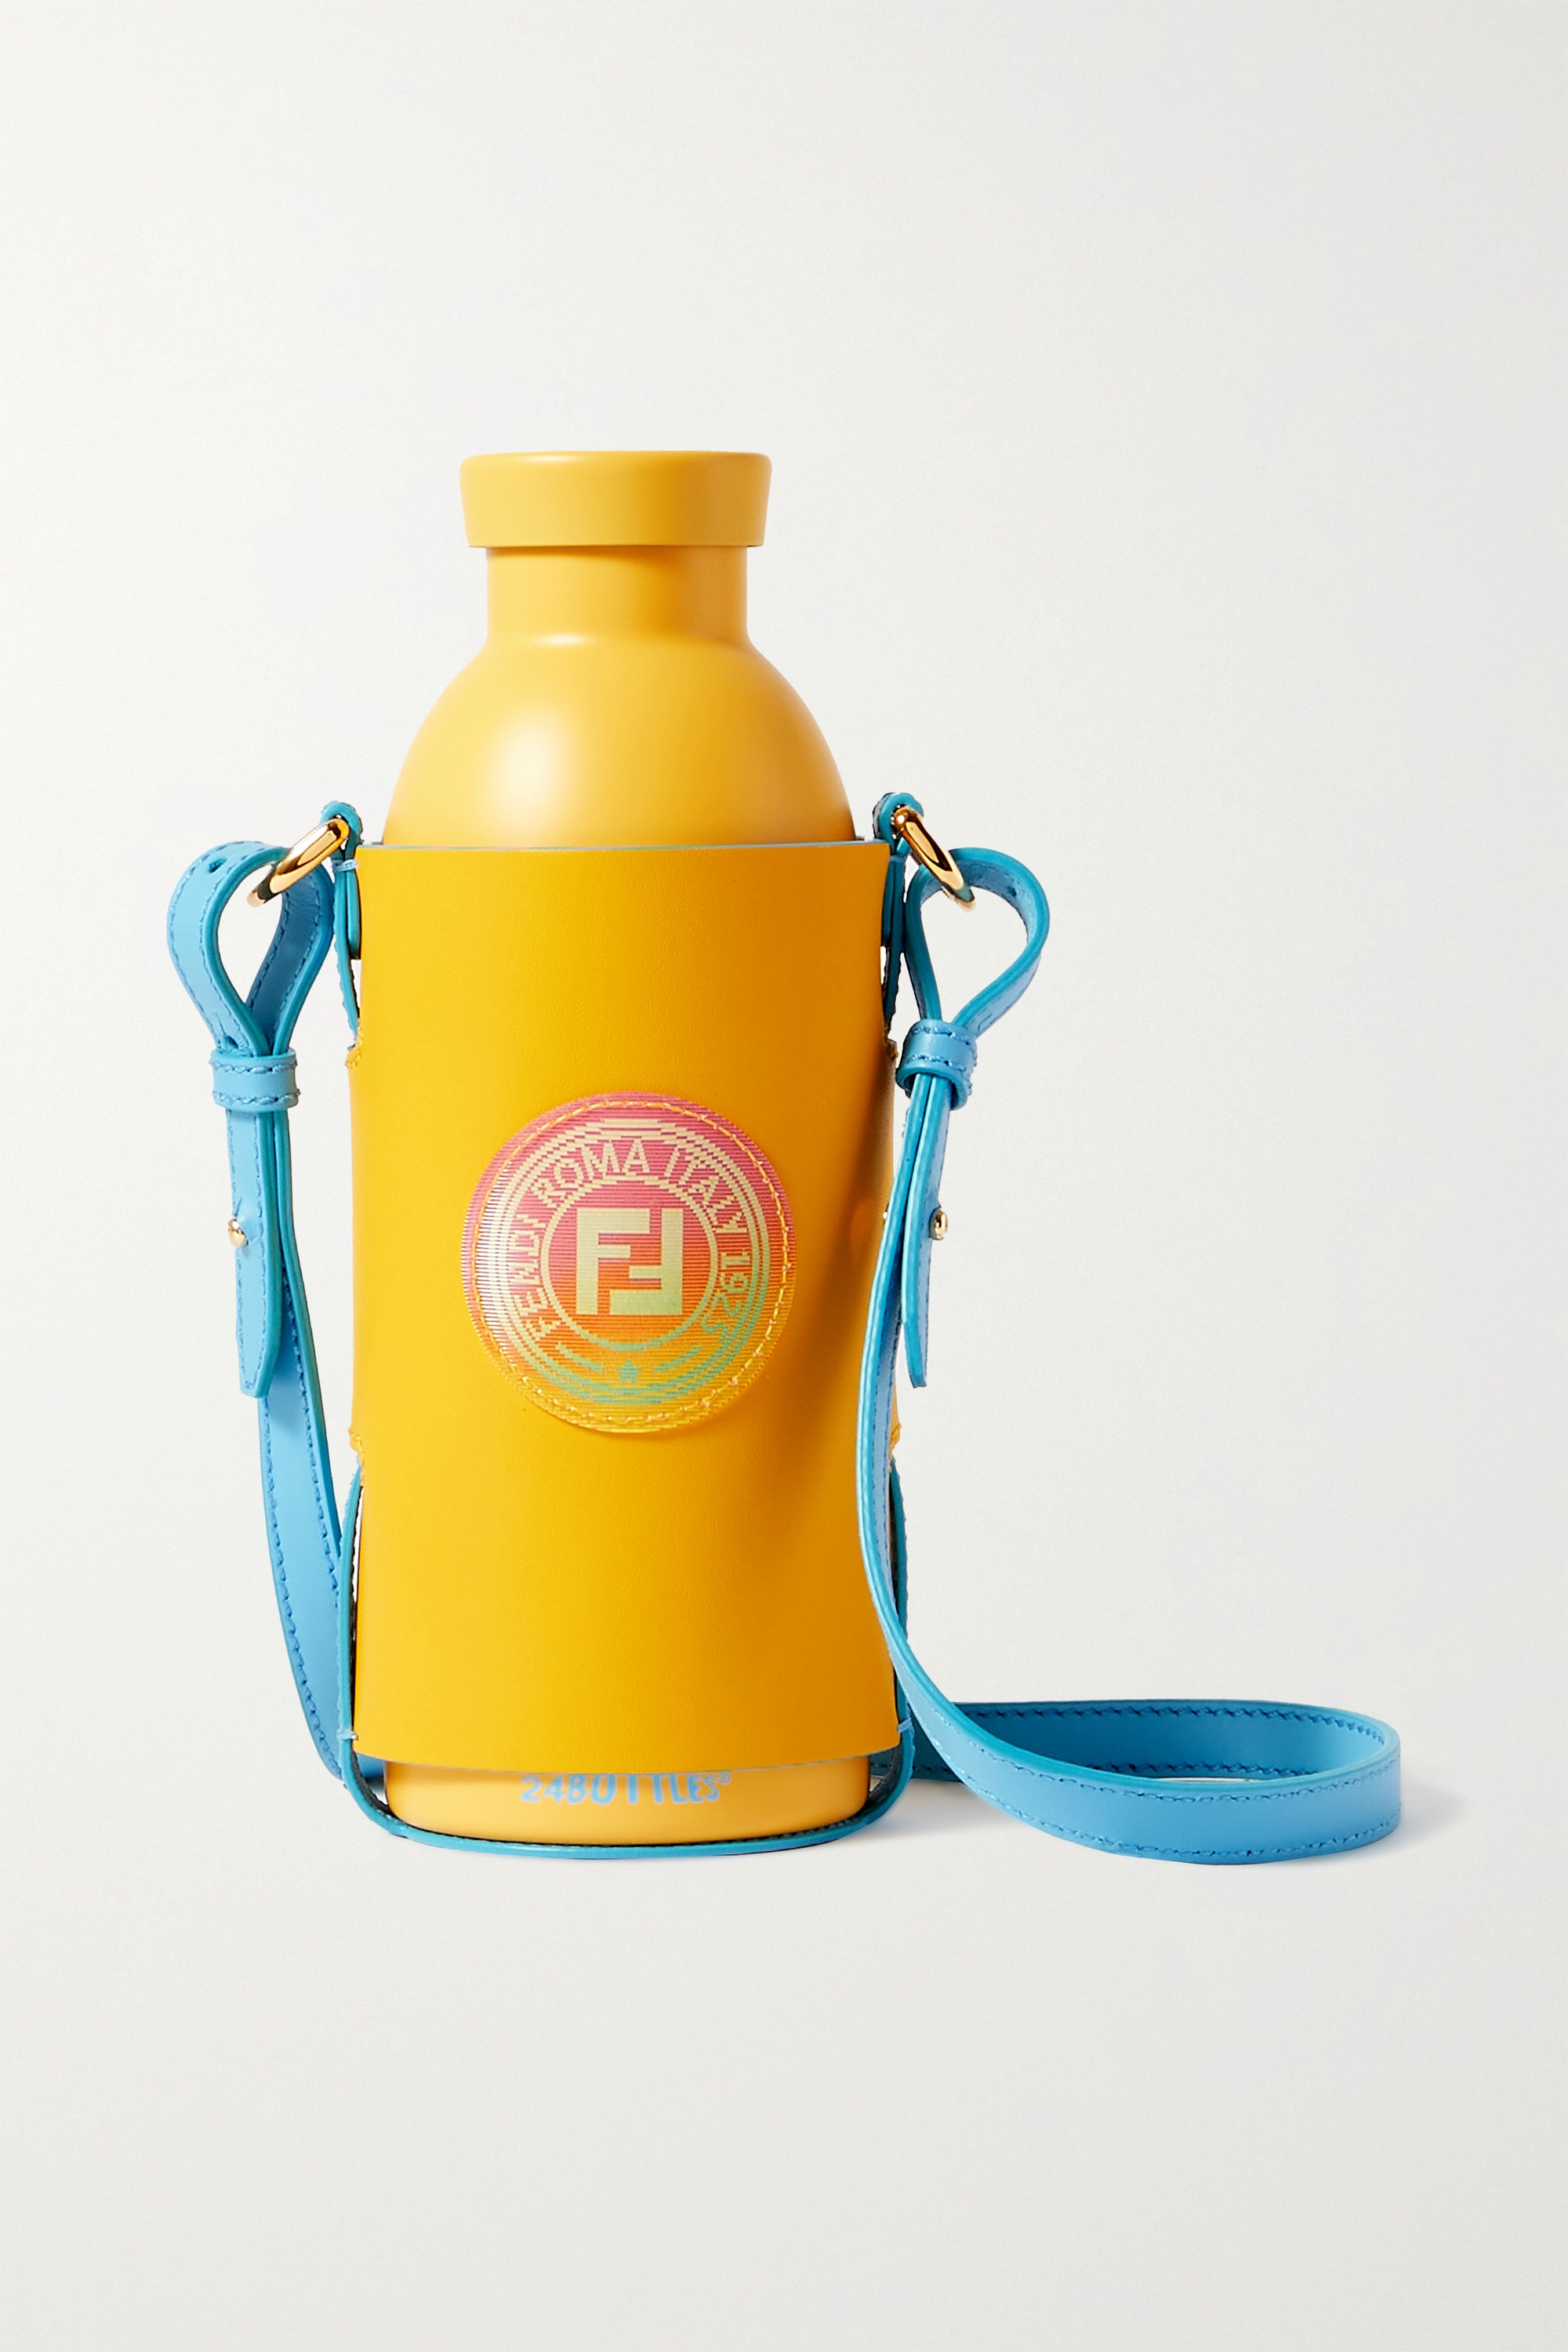 Fendi Stainless steel water bottle and leather holder